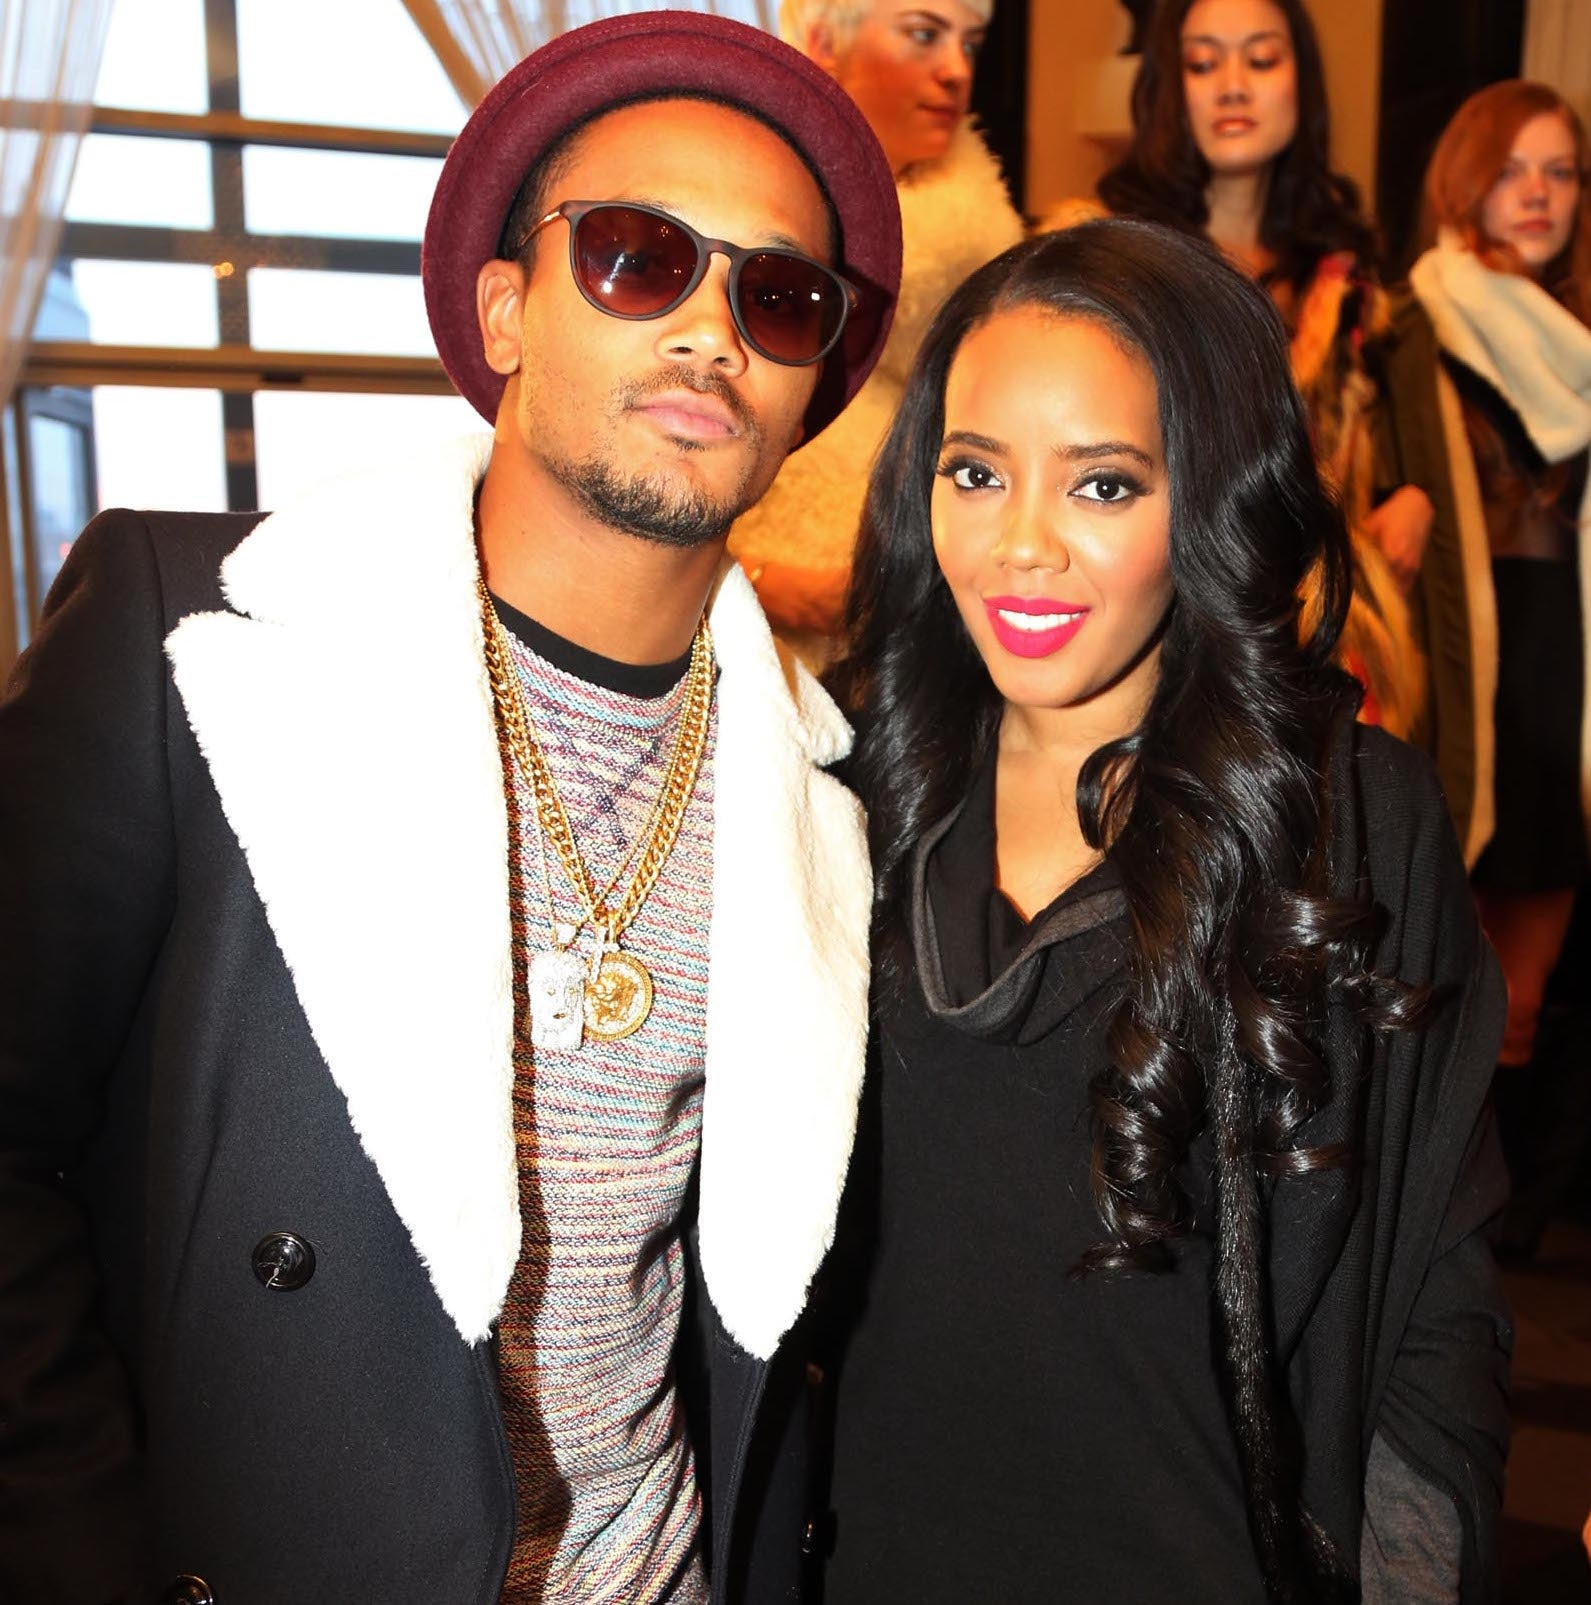 Angela simmons and romeo miller dating in 2019